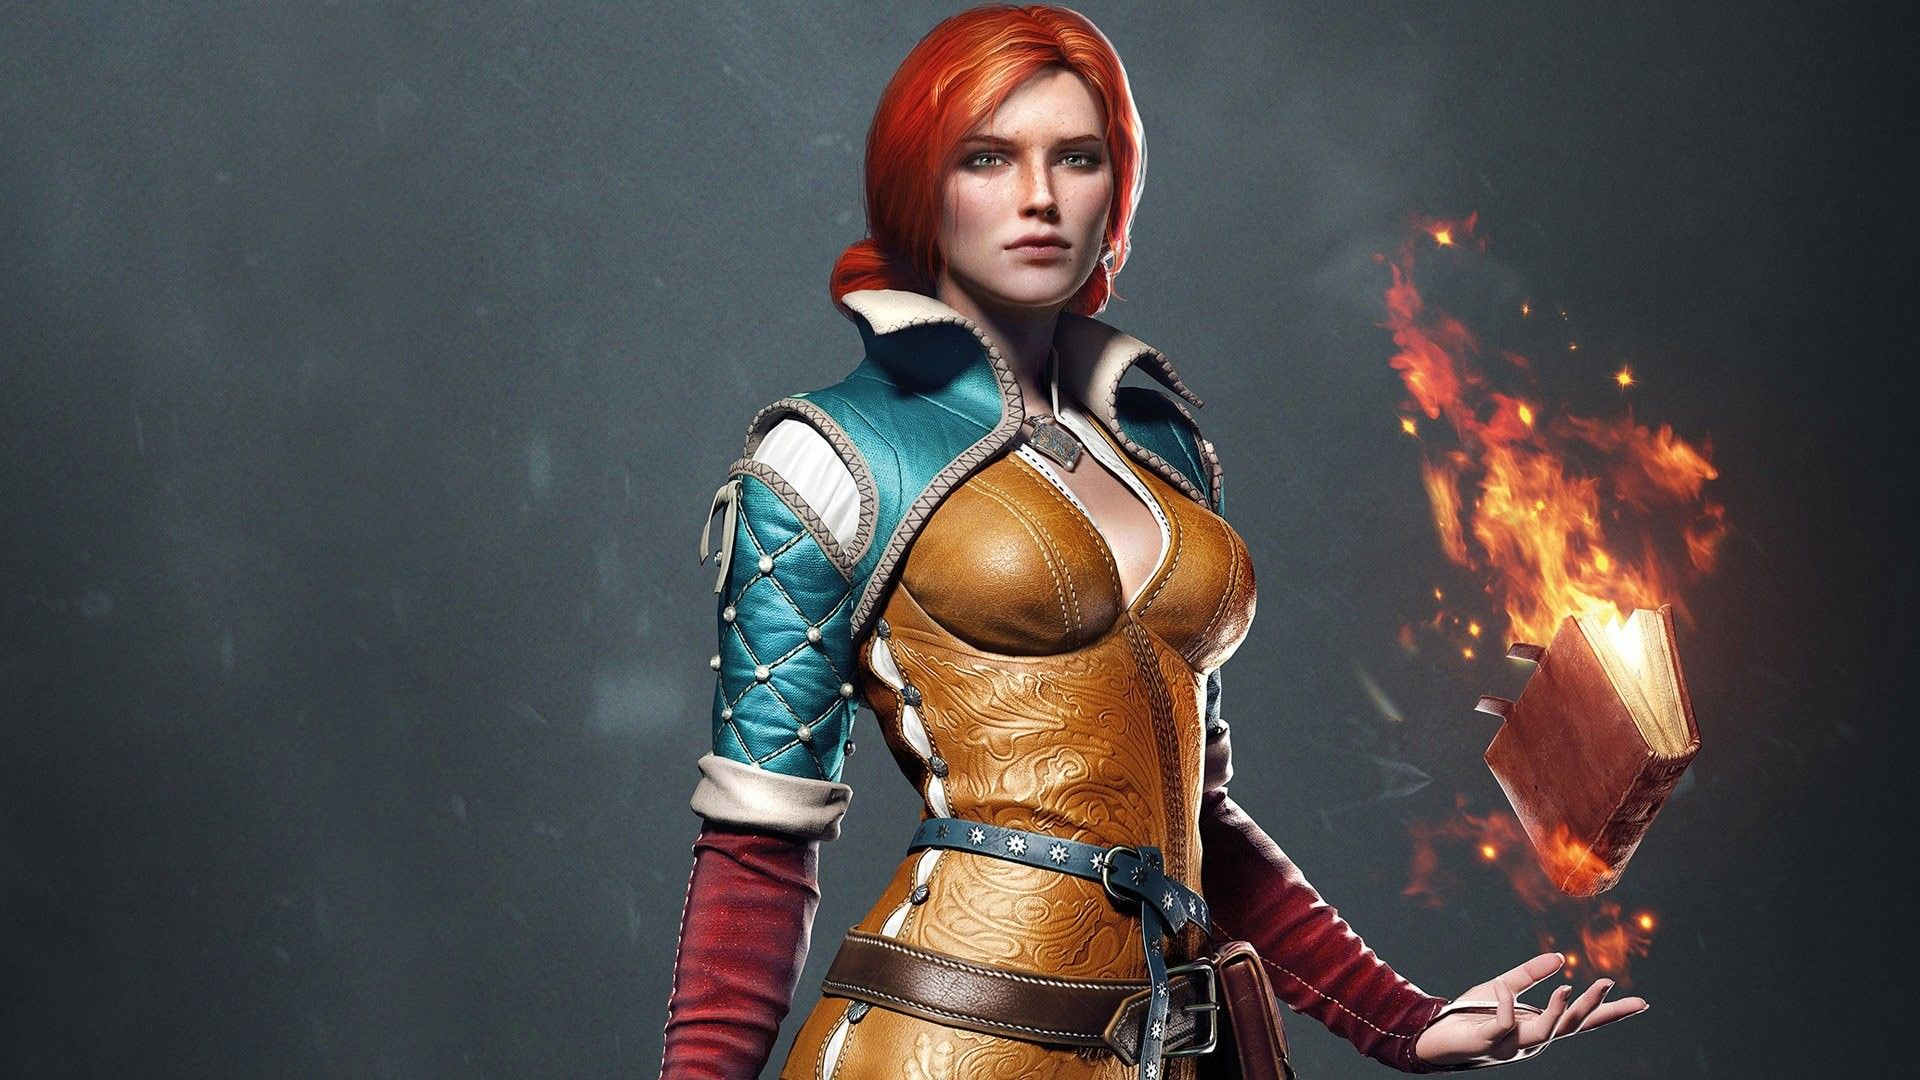 The Witcher Triss, Cool Wallpaper